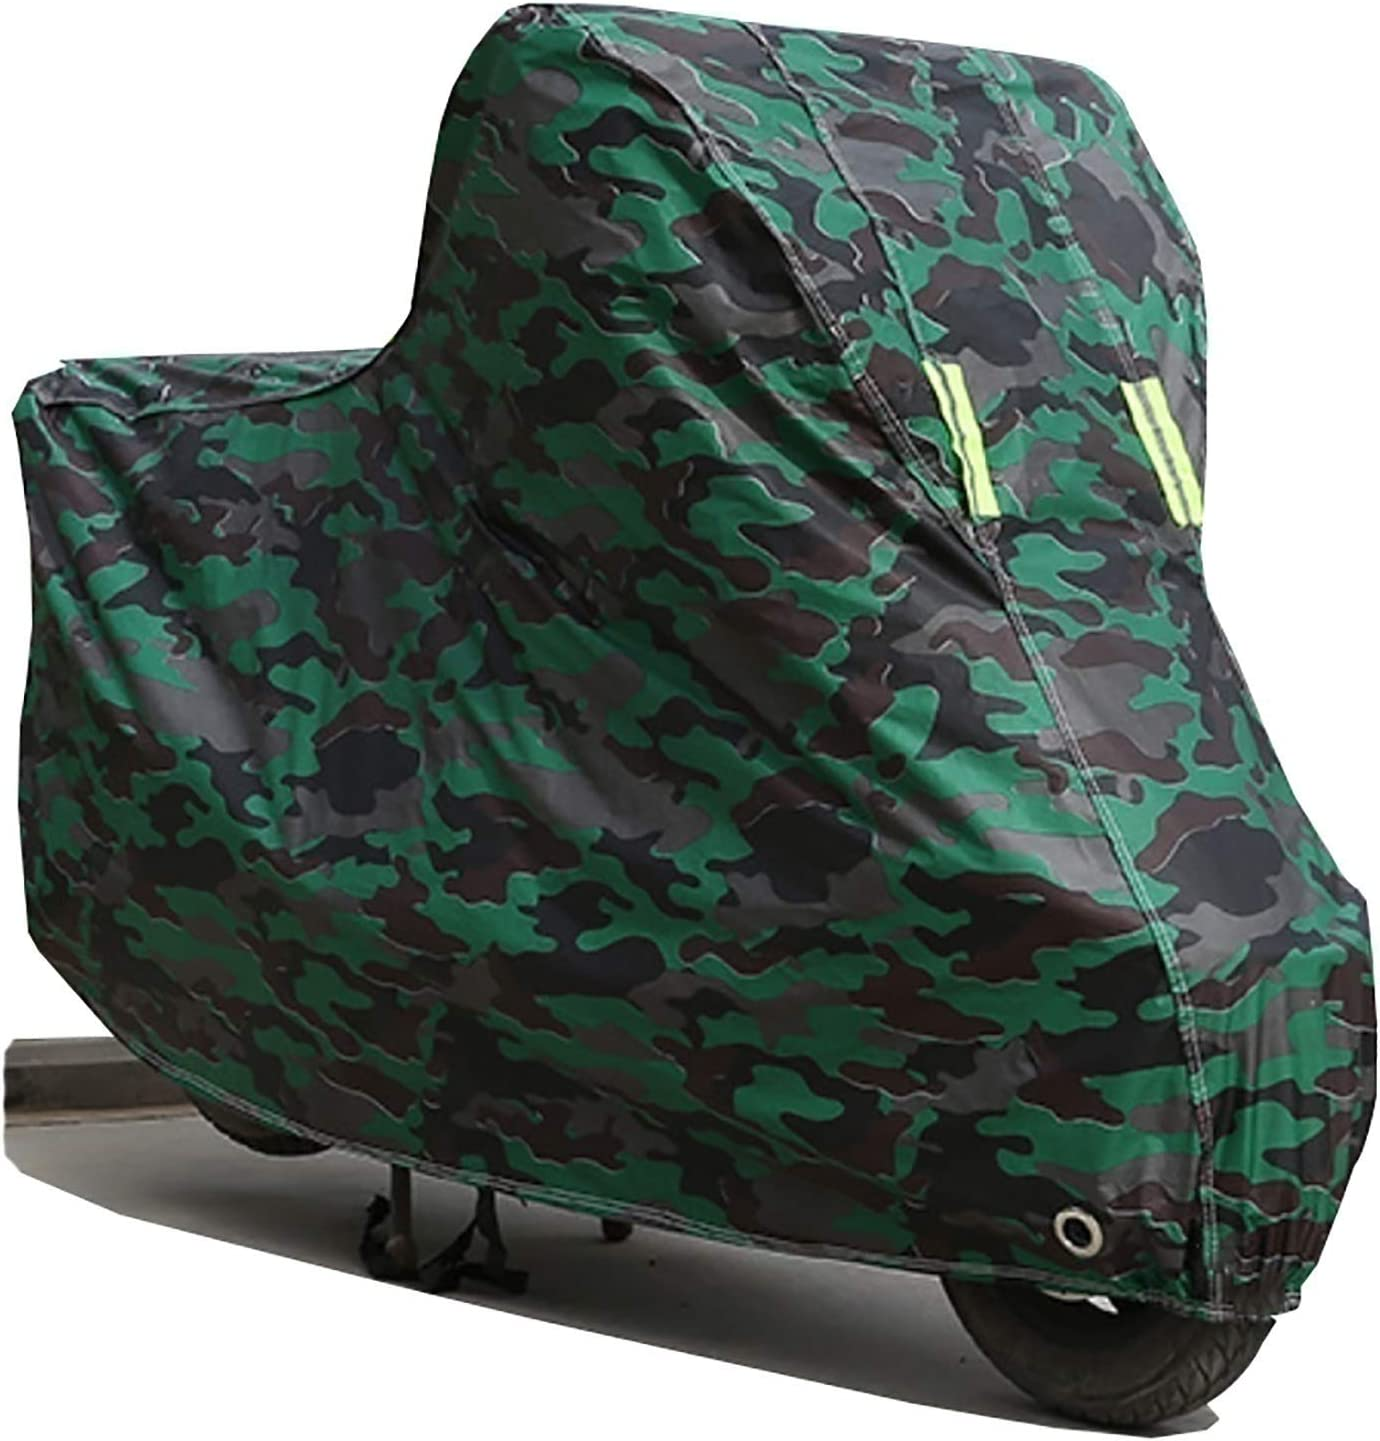 HEQCG Motorcycle Cover Compatible Elegant Super popular specialty store with BMW N R Covers